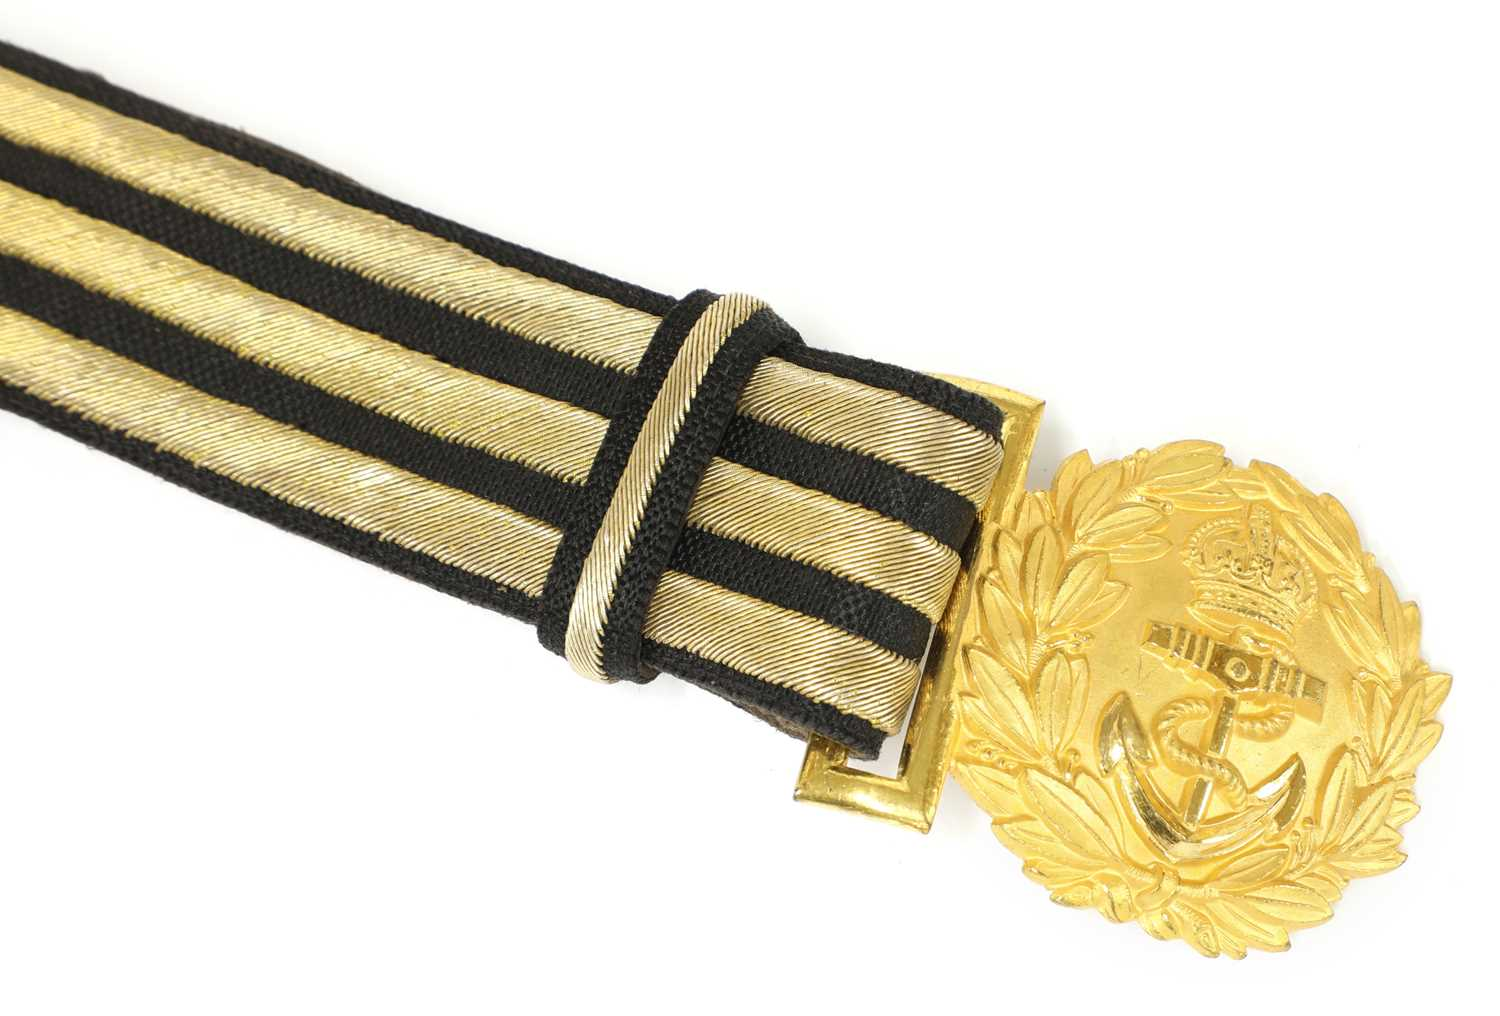 A George VI Royal Navy officer's sword, - Image 3 of 9